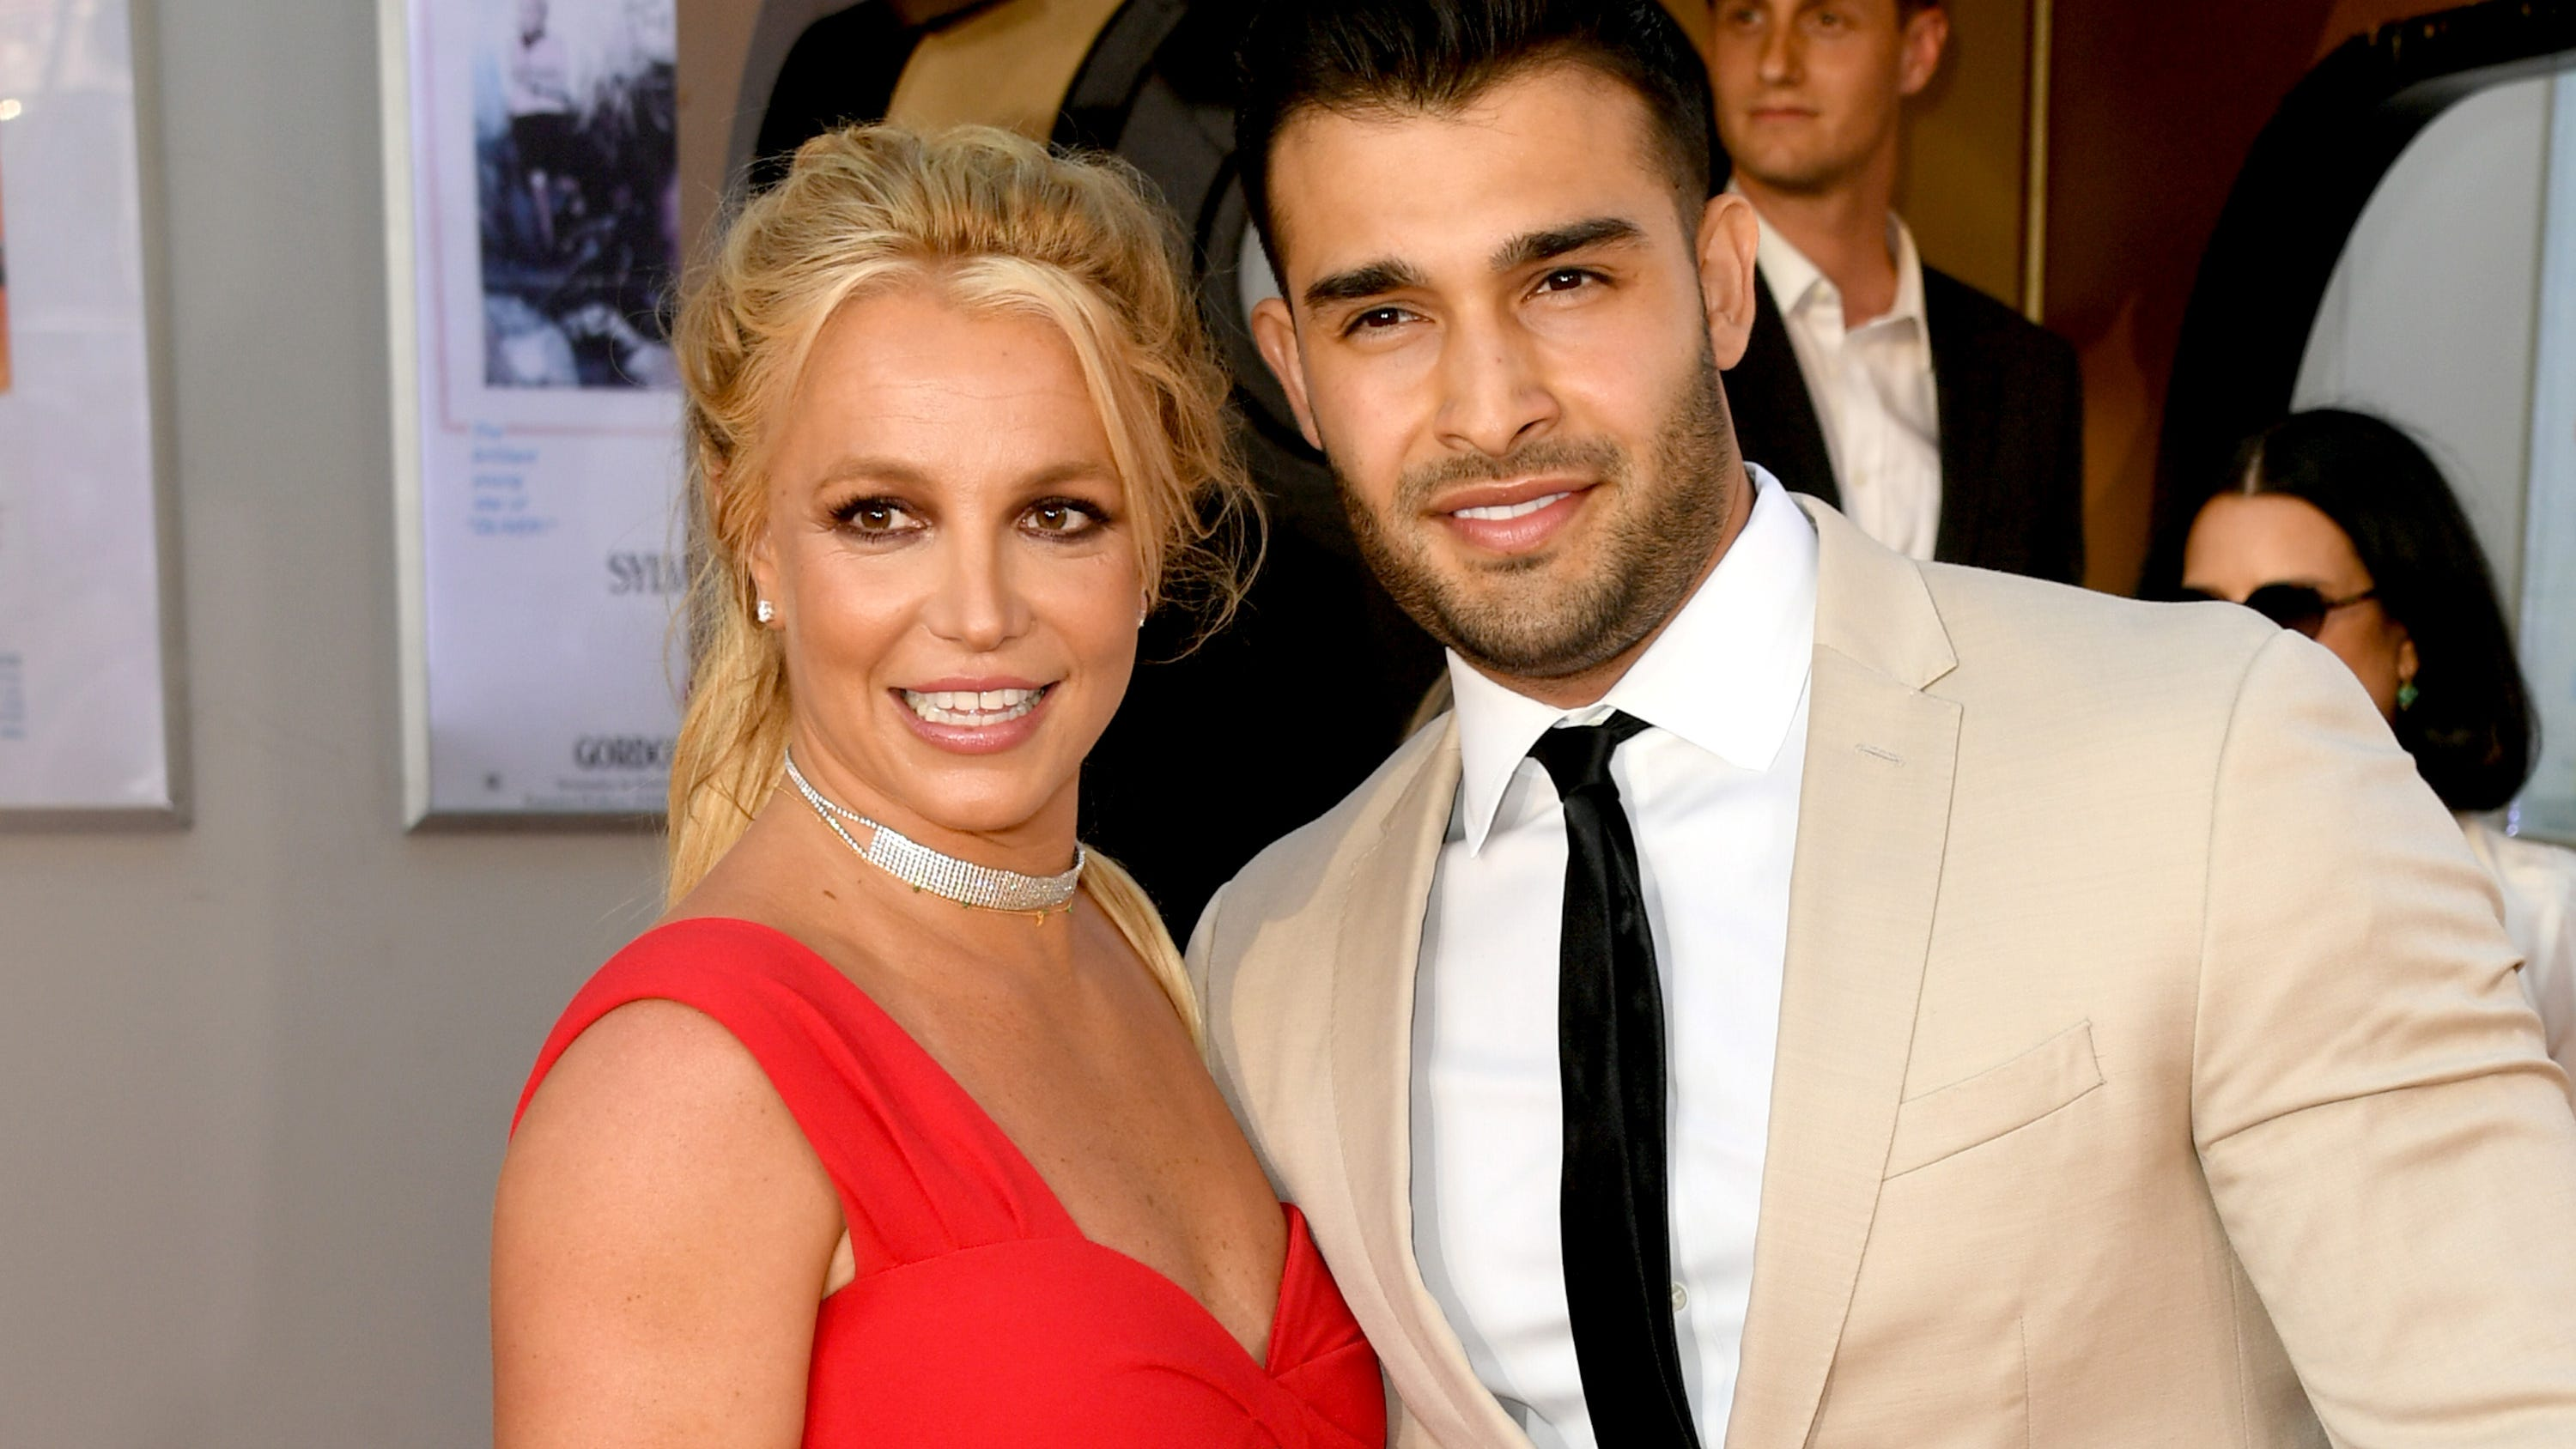 Britney Spears shows off engagement ring from Sam Asghari: 'I can't f***ing believe it'